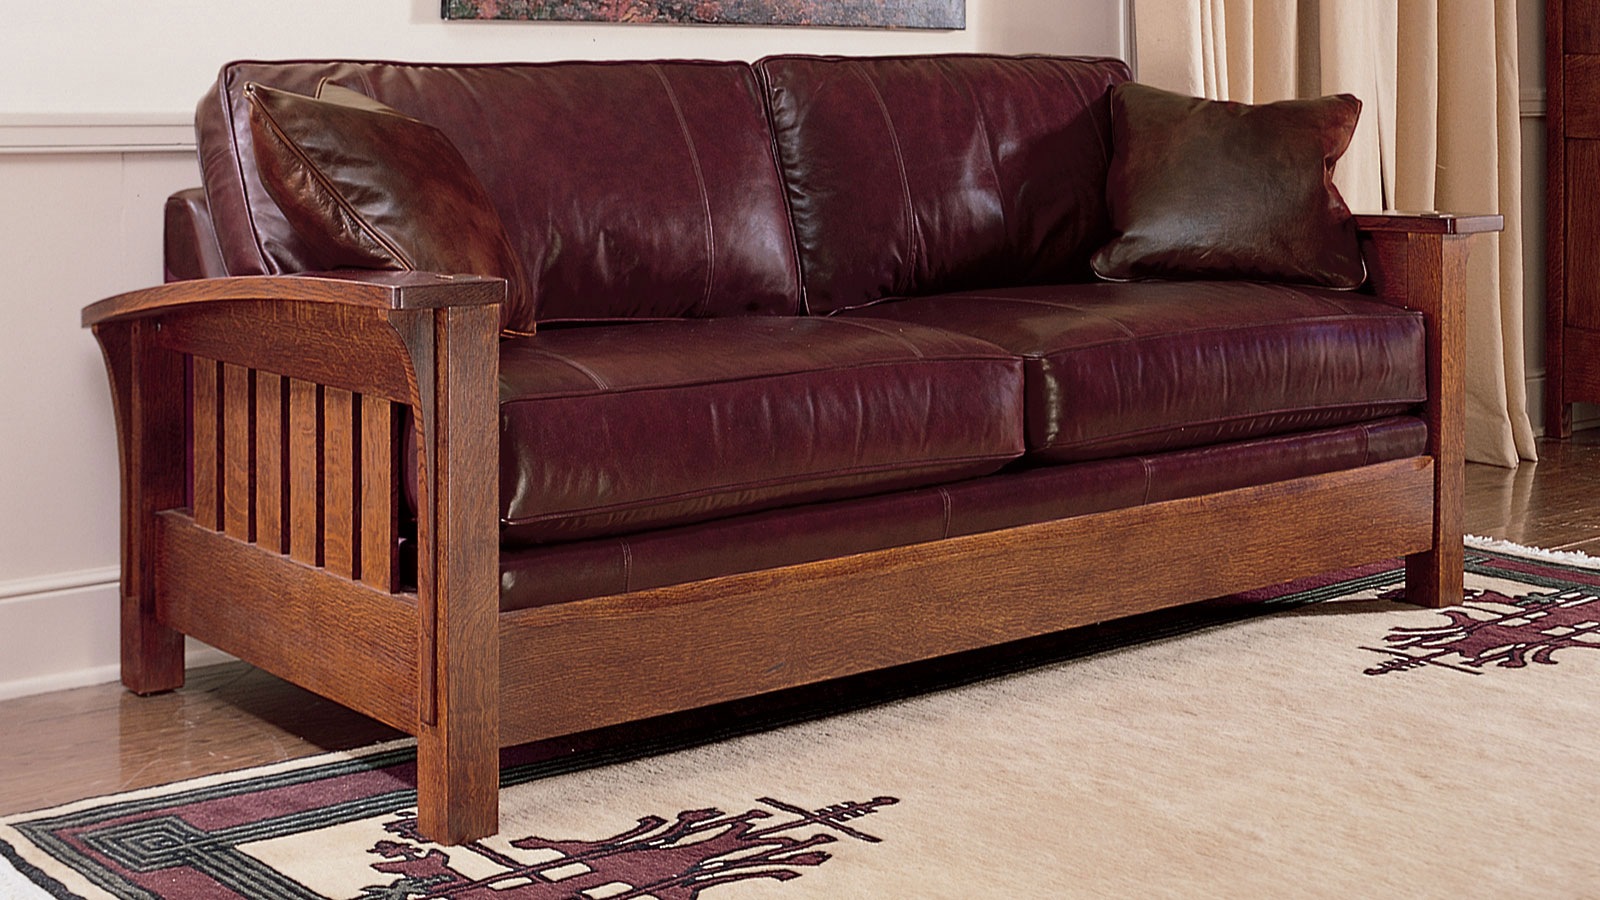 Stickley Orchard Street Leather Sofa